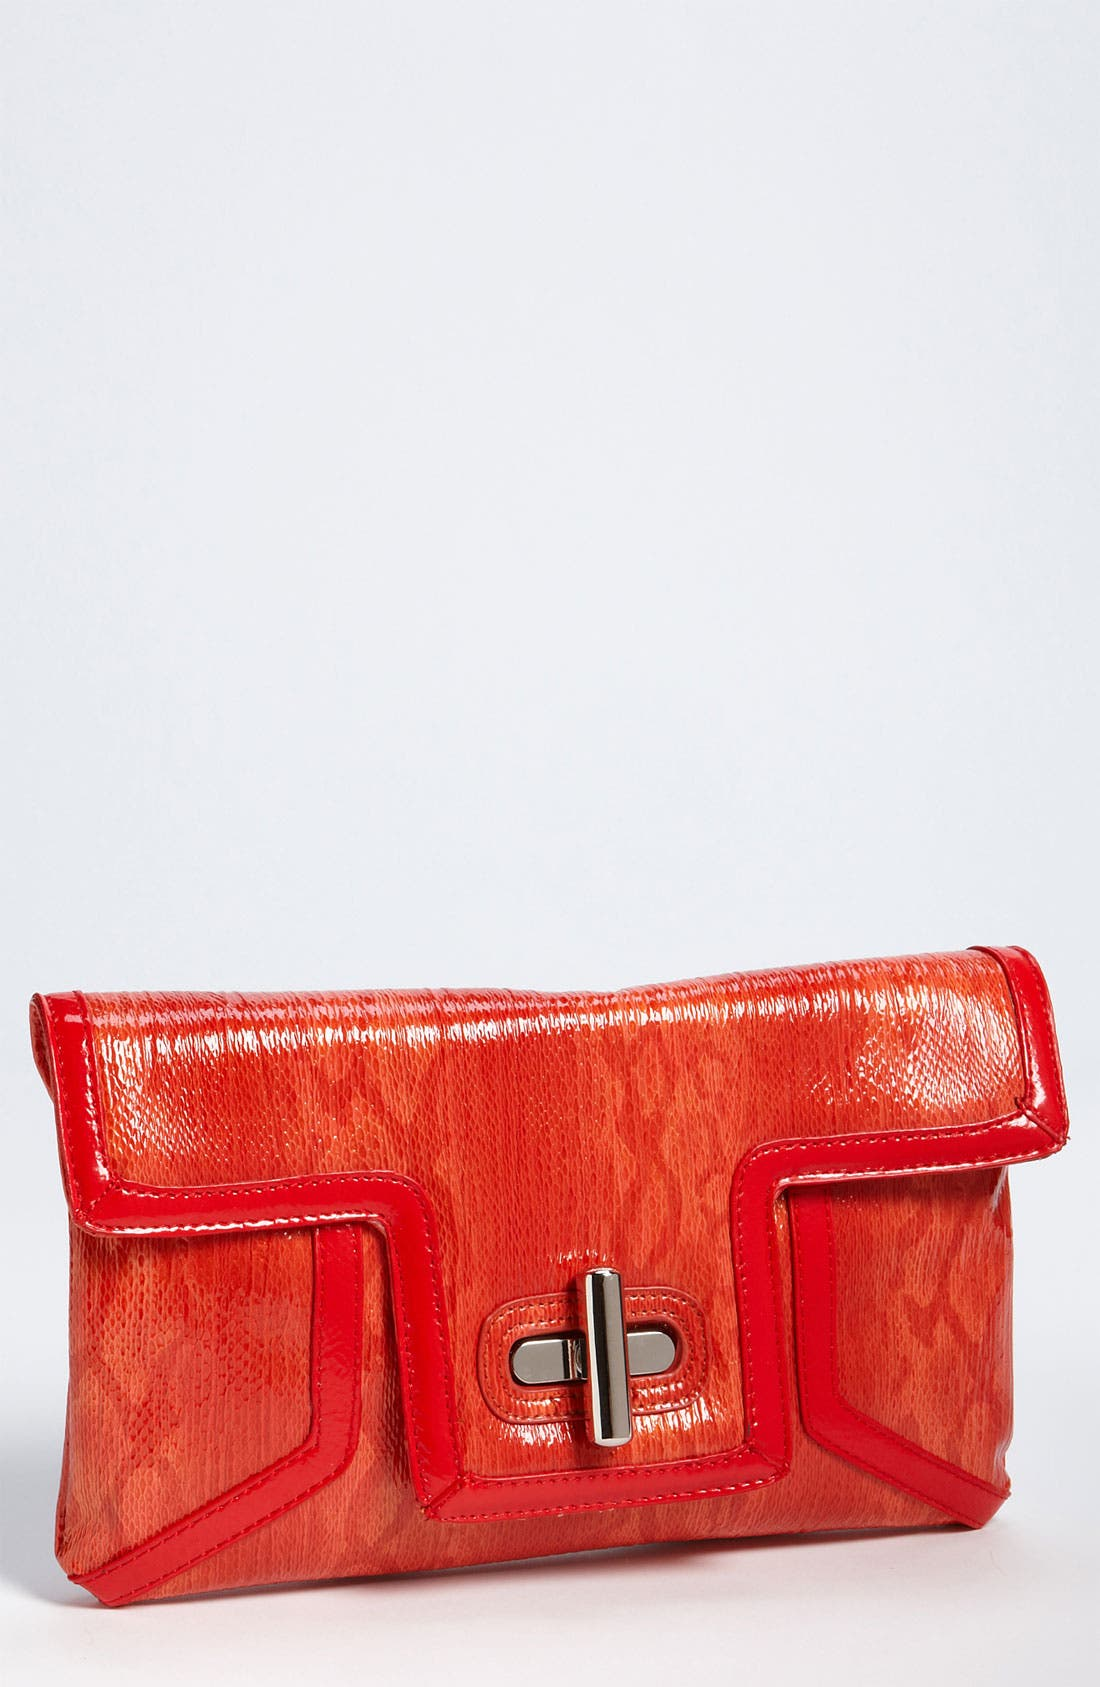 Alternate Image 1 Selected - SR Squared by Sondra Roberts Patent Snake Print Clutch